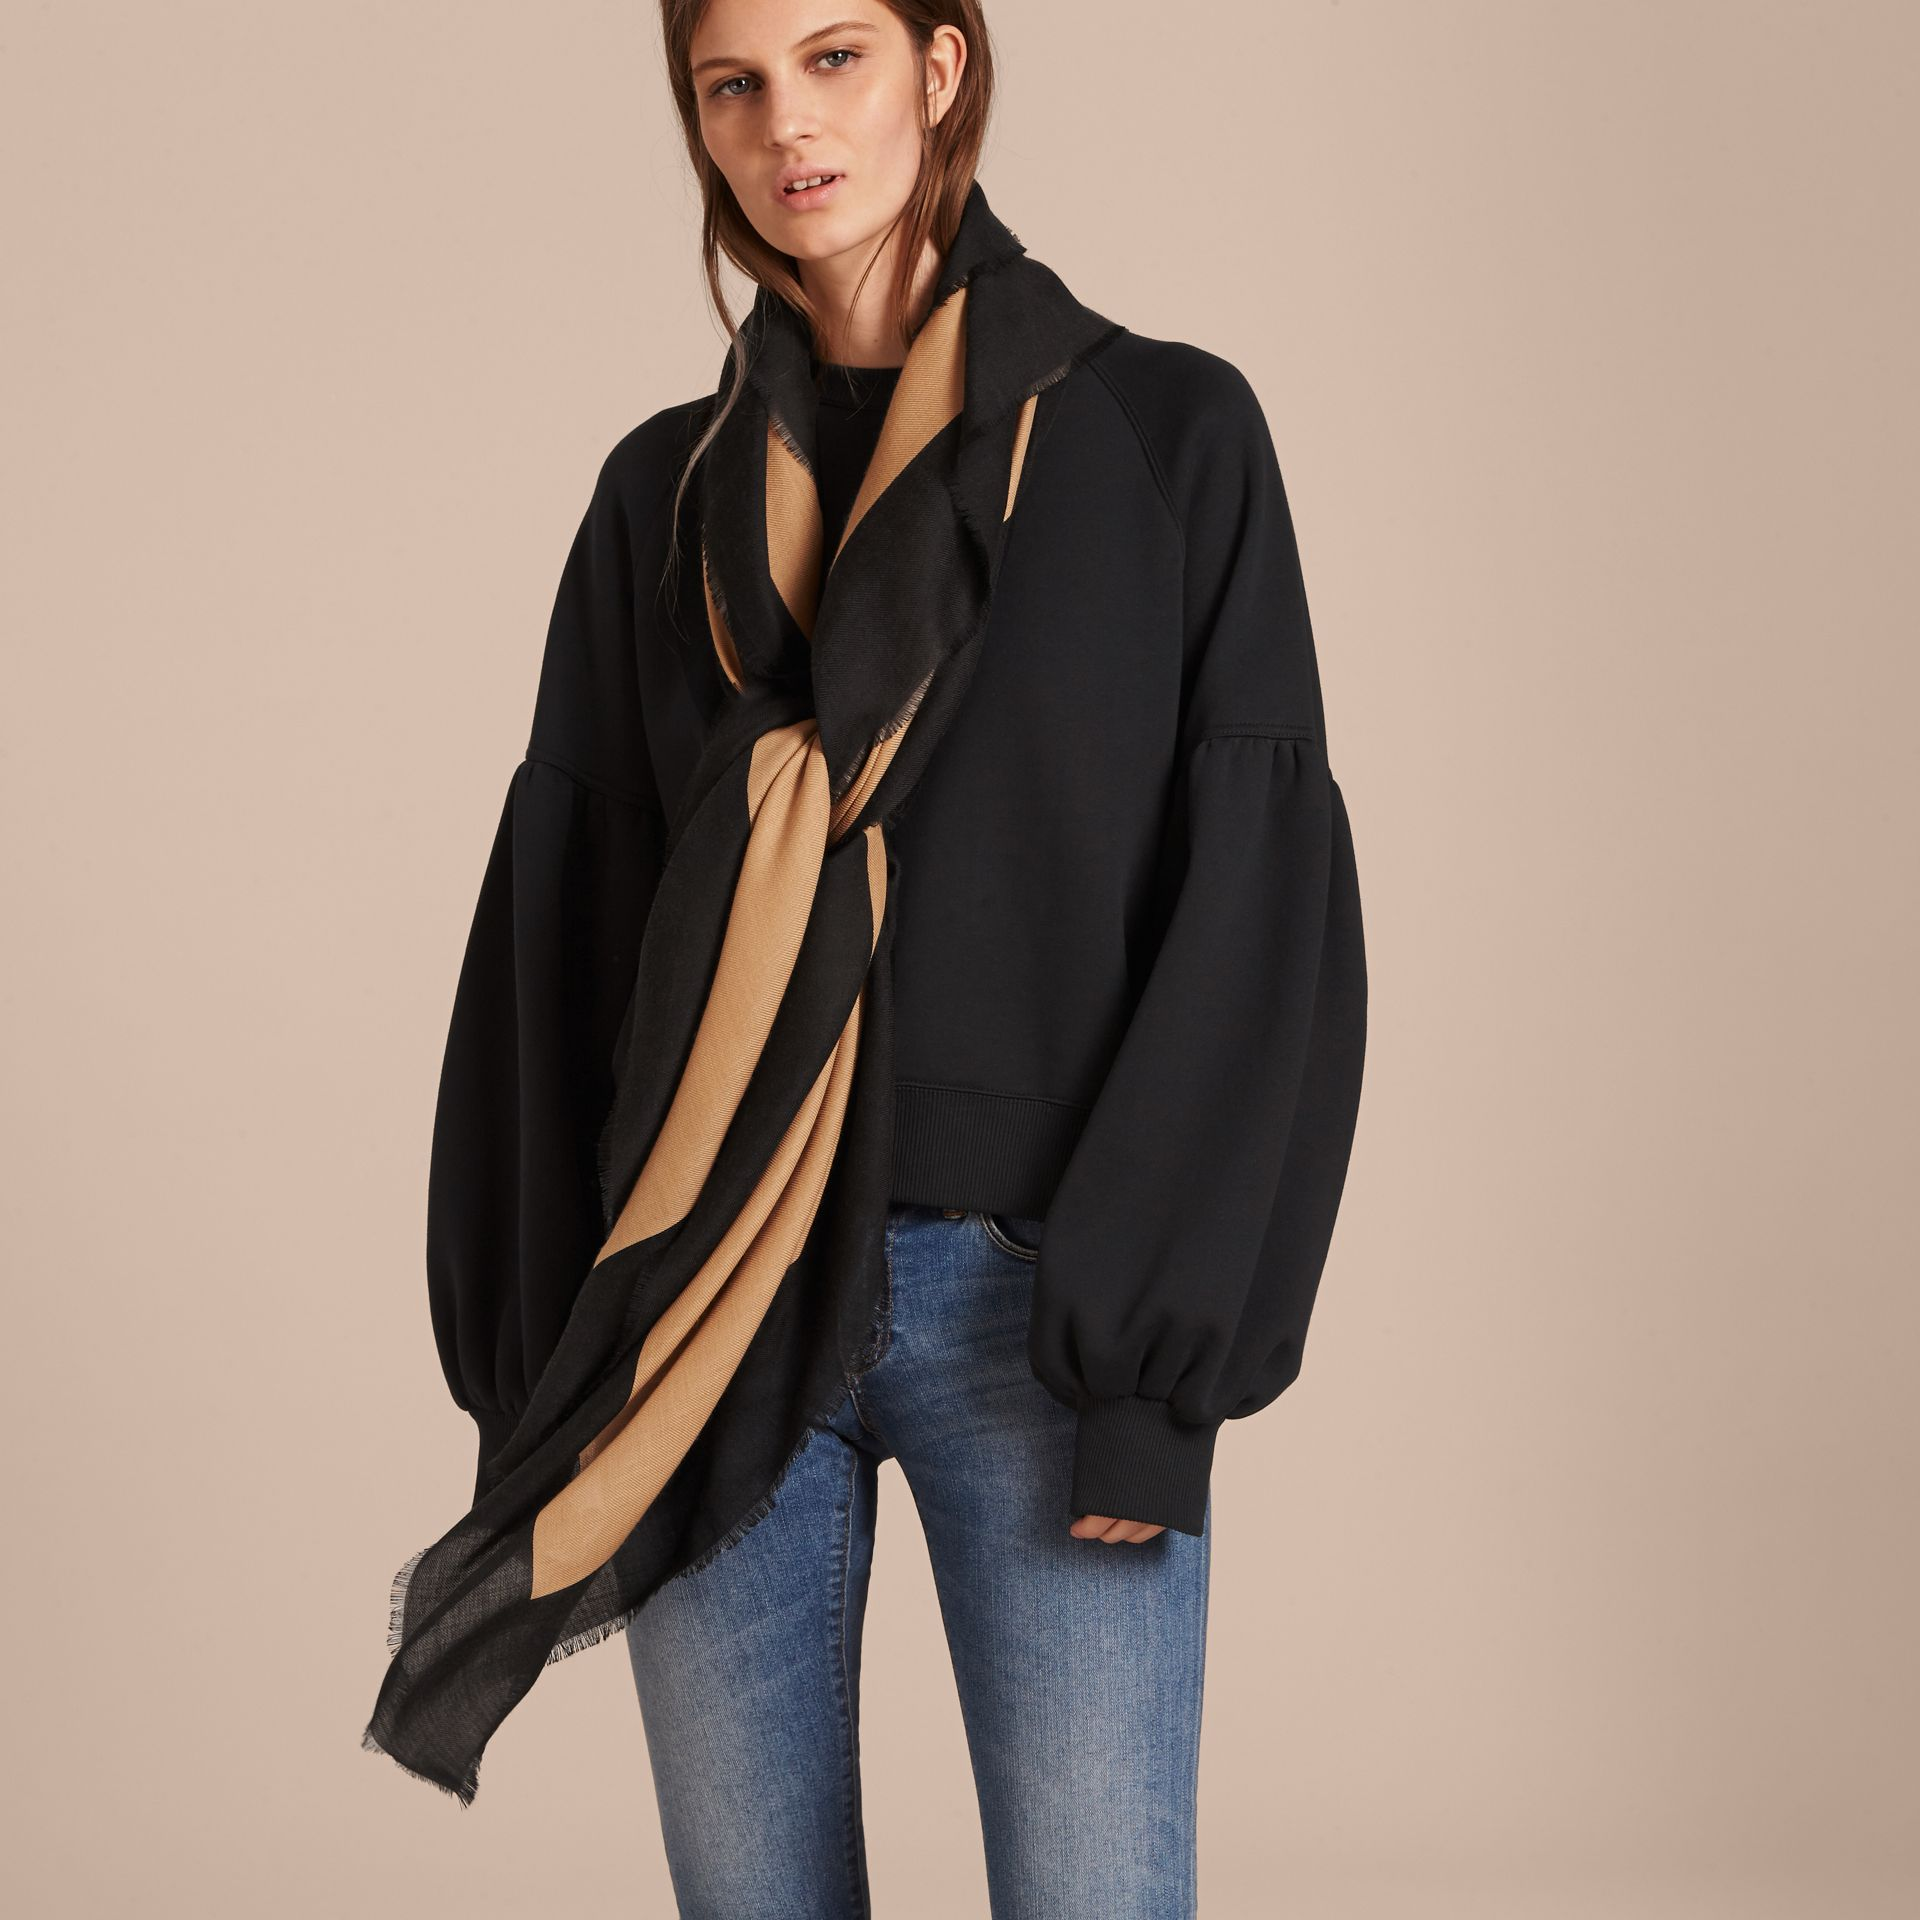 Burberry Print Cashmere Blend Scarf Camel/black - gallery image 3